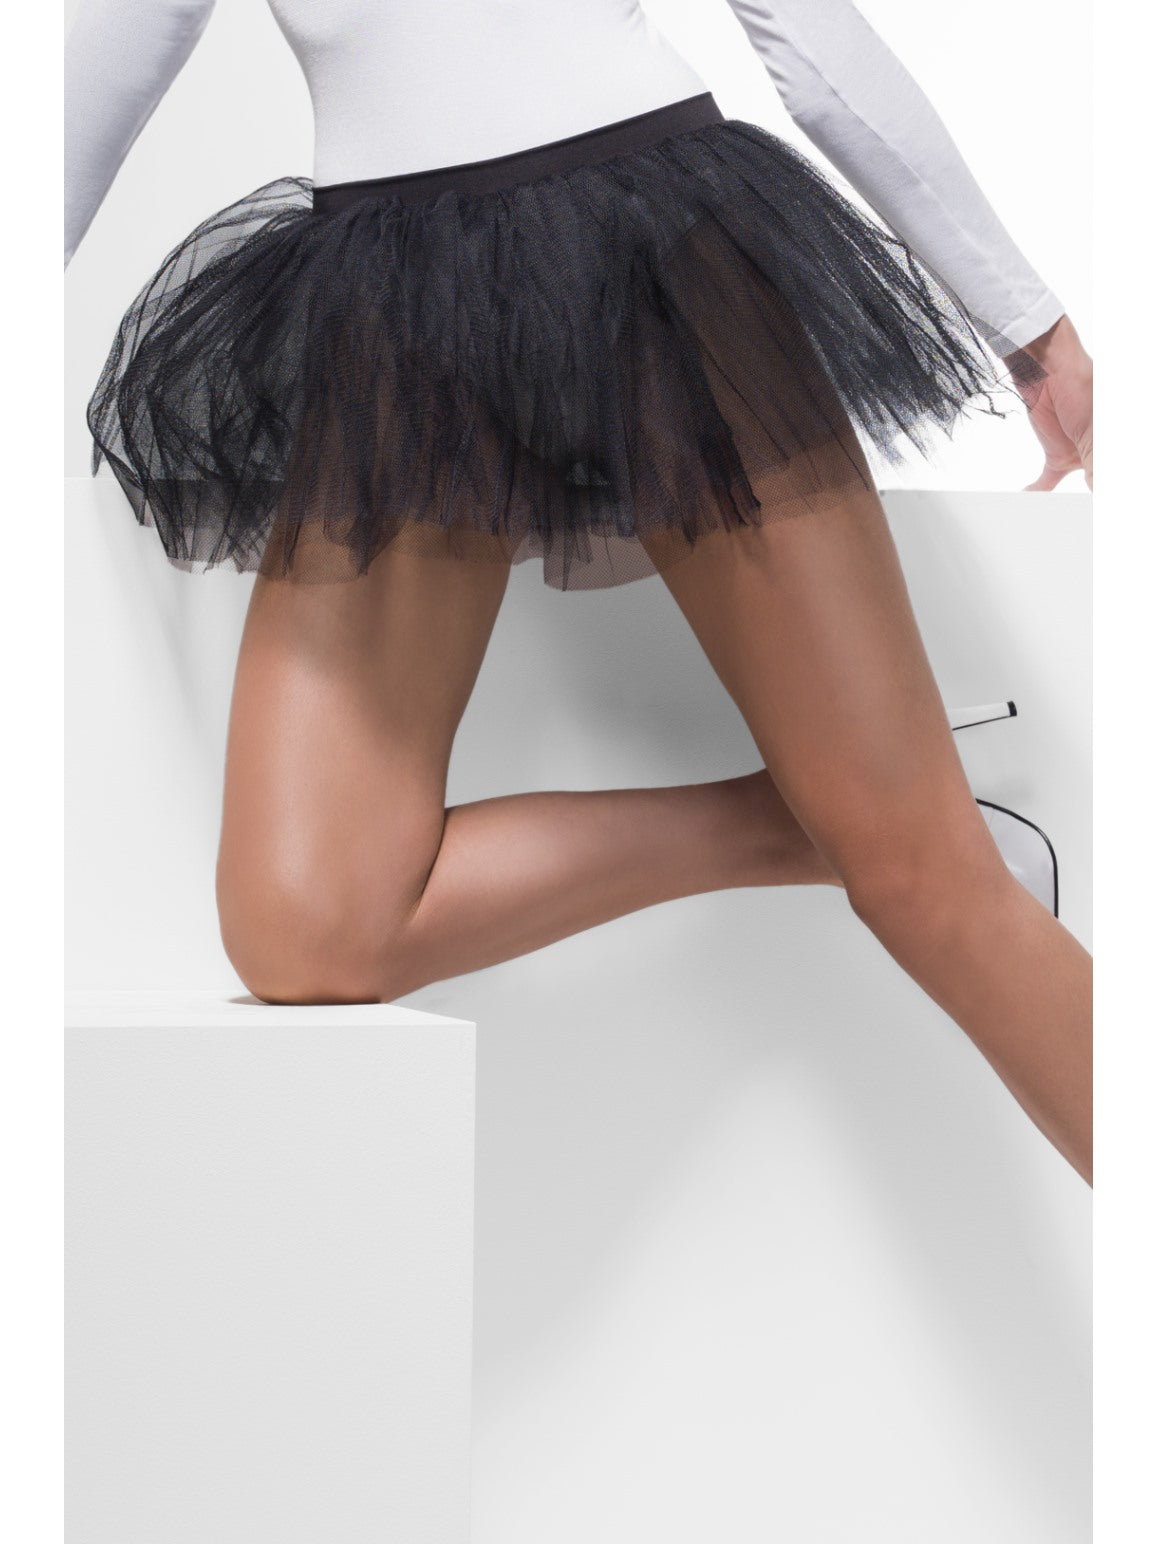 Black Tutu Underskirt - Party Savers